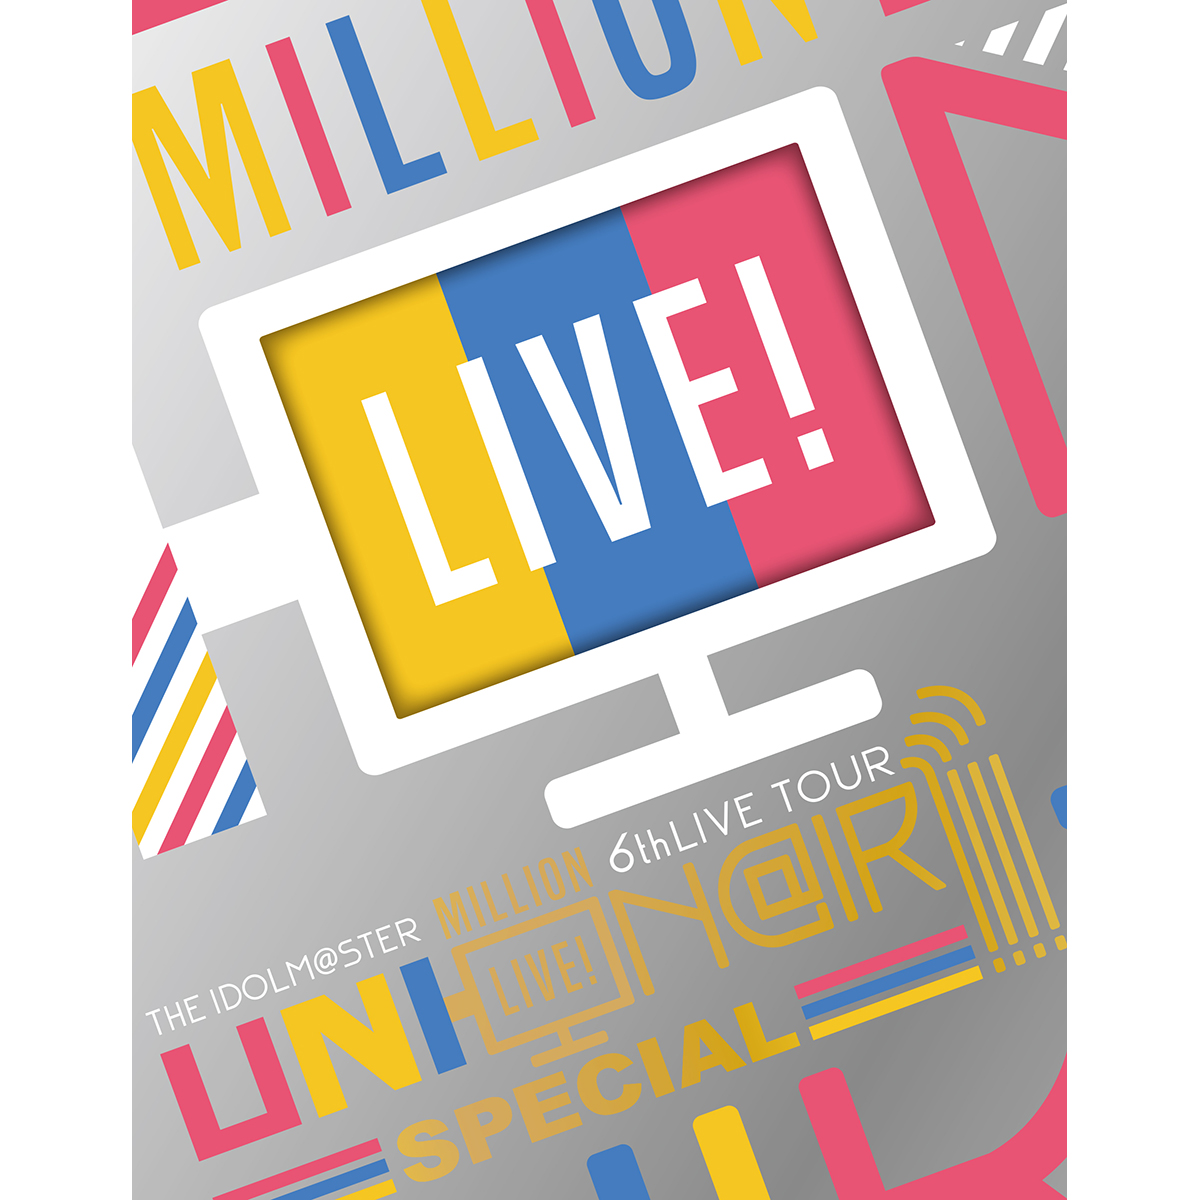 THE IDOLM@STER MILLION LIVE! 6thLIVE TOUR UNI-ON@IR!!!! LIVE Blu-ray SPECIAL COMPLETE THE@TER [Limited Edition]